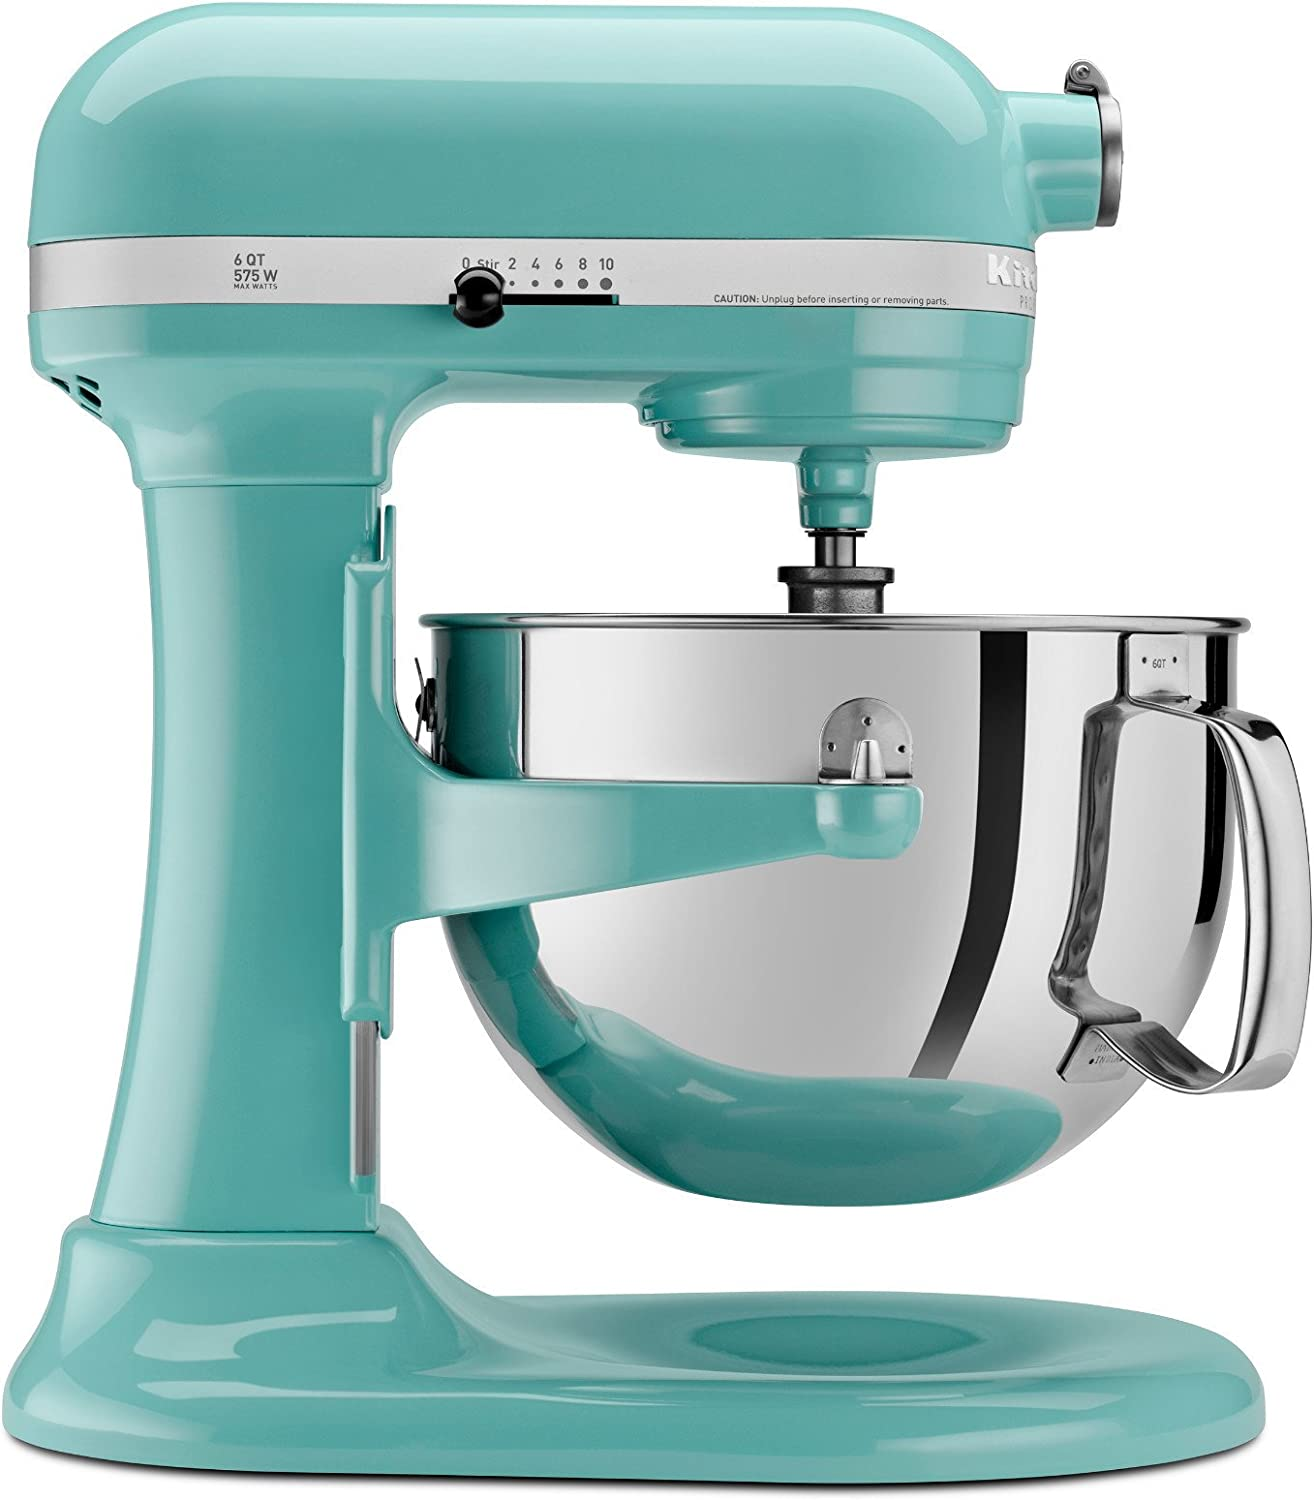 NEW Kitchenaid Kp26m1xaq Aqua Sky Martha Stewart Color Pro 600 Stand Mixer 6-qt Best Quality Fast Shipping Ship Worldwide From Hengheng Shop